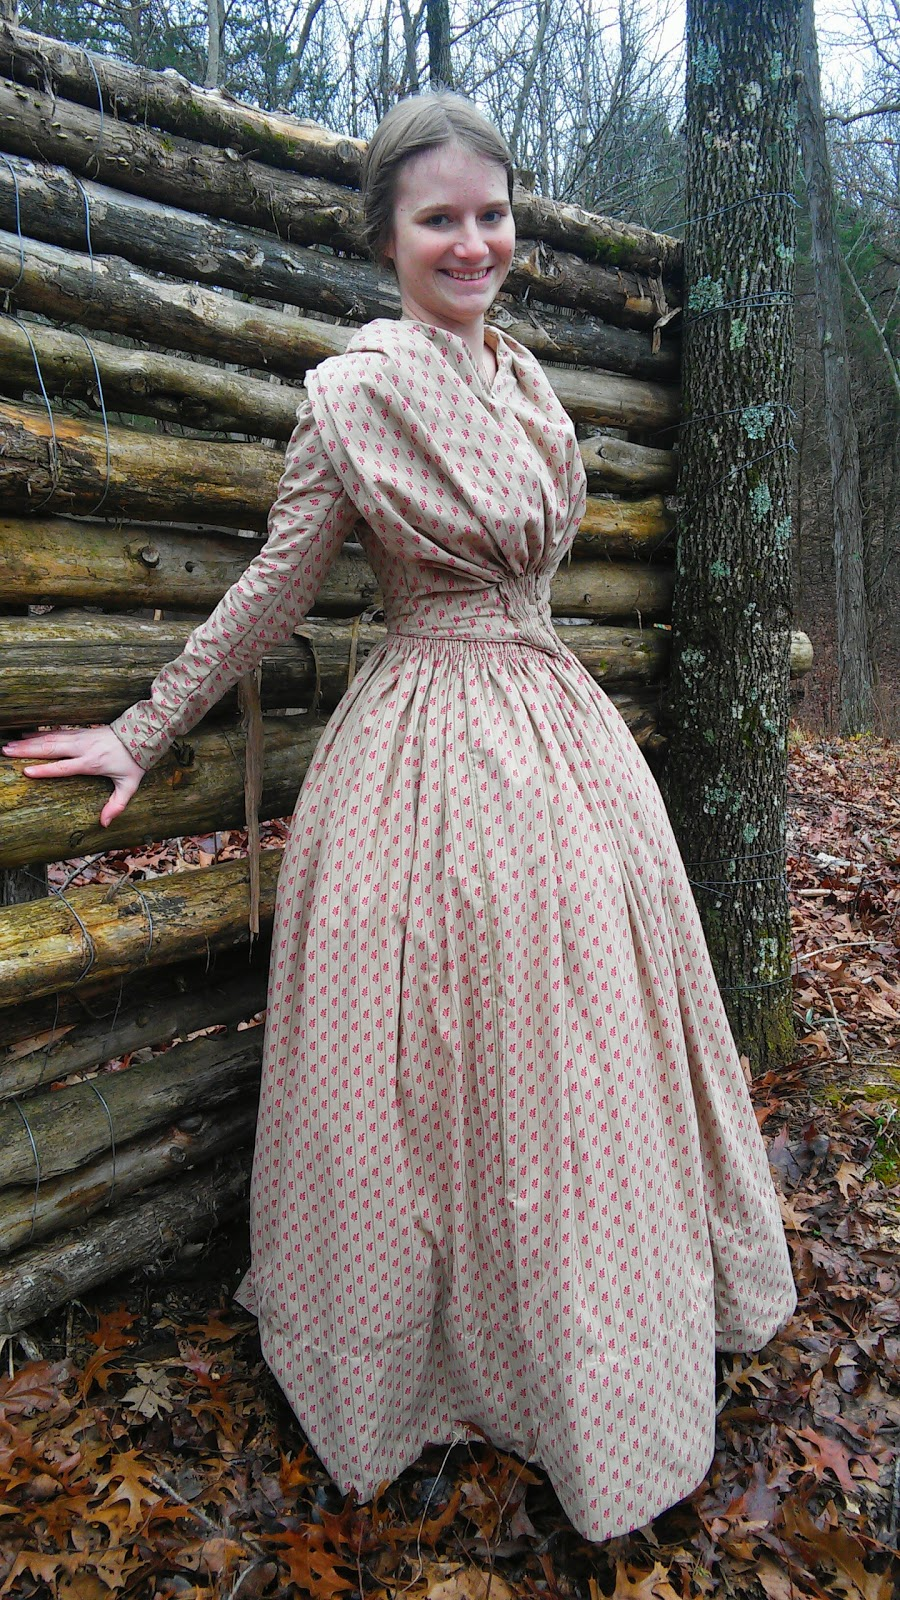 The Sewing Goatherd: The Completely Handsewn 1840's Dress - Done!